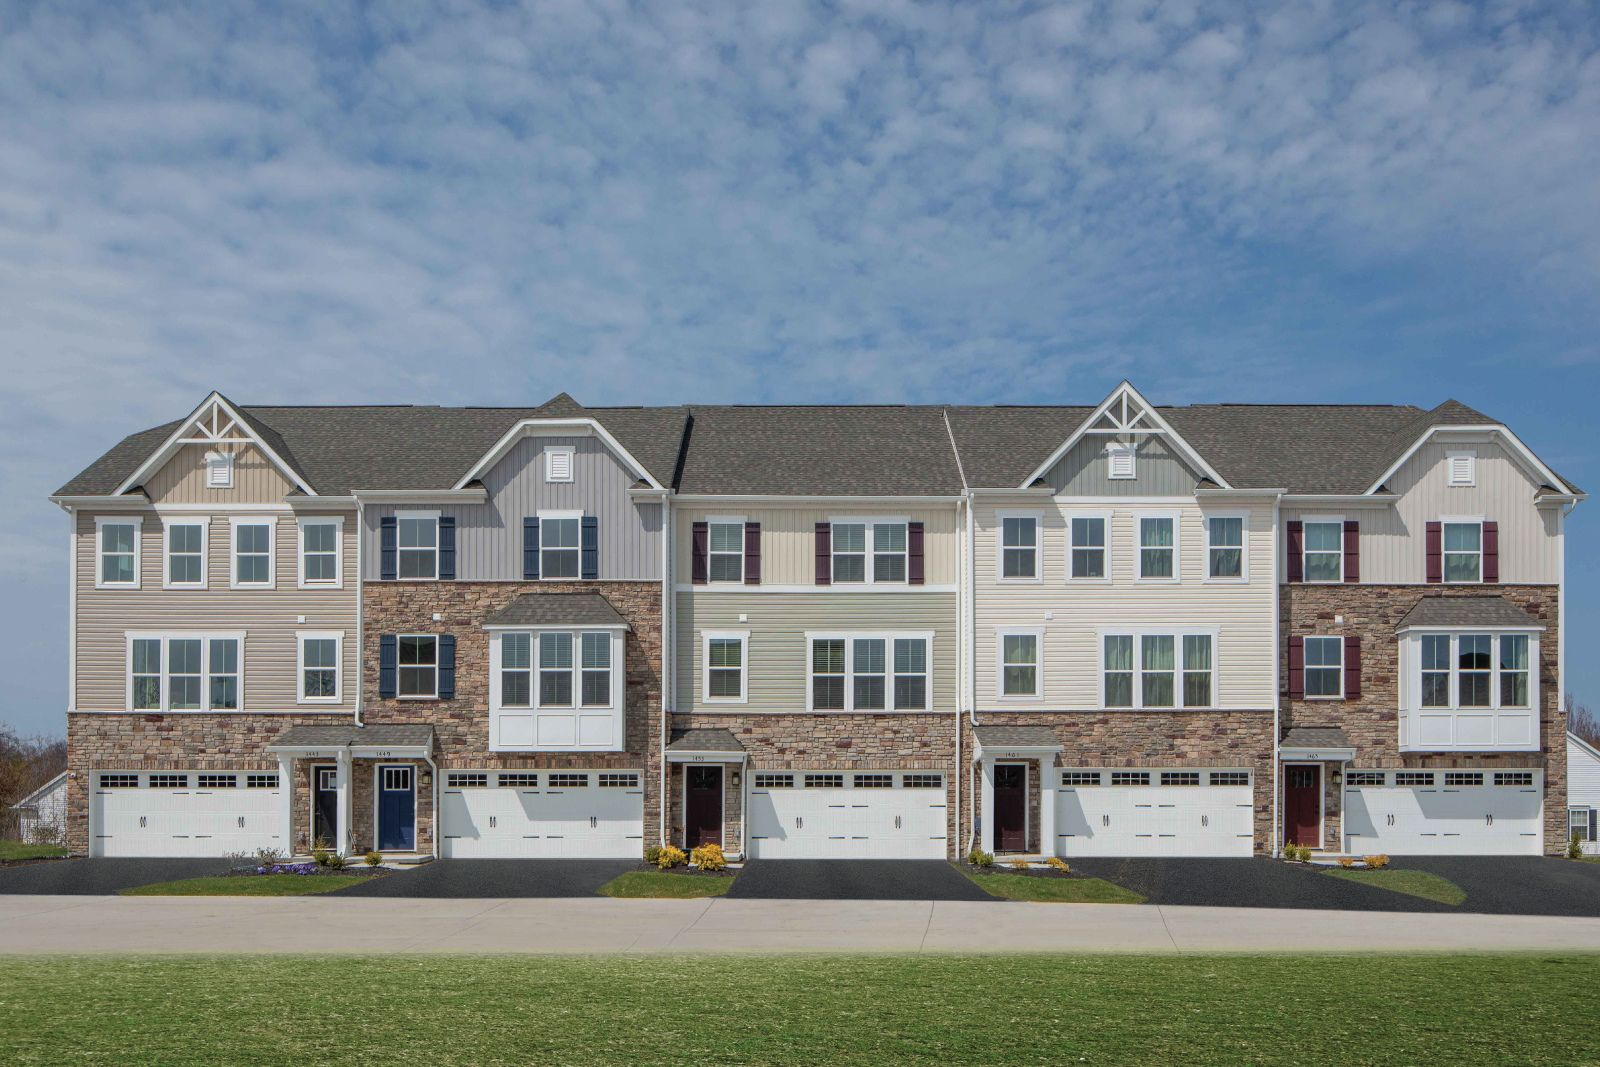 Welcome to Greenwood Village:The best location for new townhomes in Canonsburg with the quickest access to I-79, Rt. 19, & Southpointe. Lawn maintenance included. From upper $200s.Click here to join the VIP List!